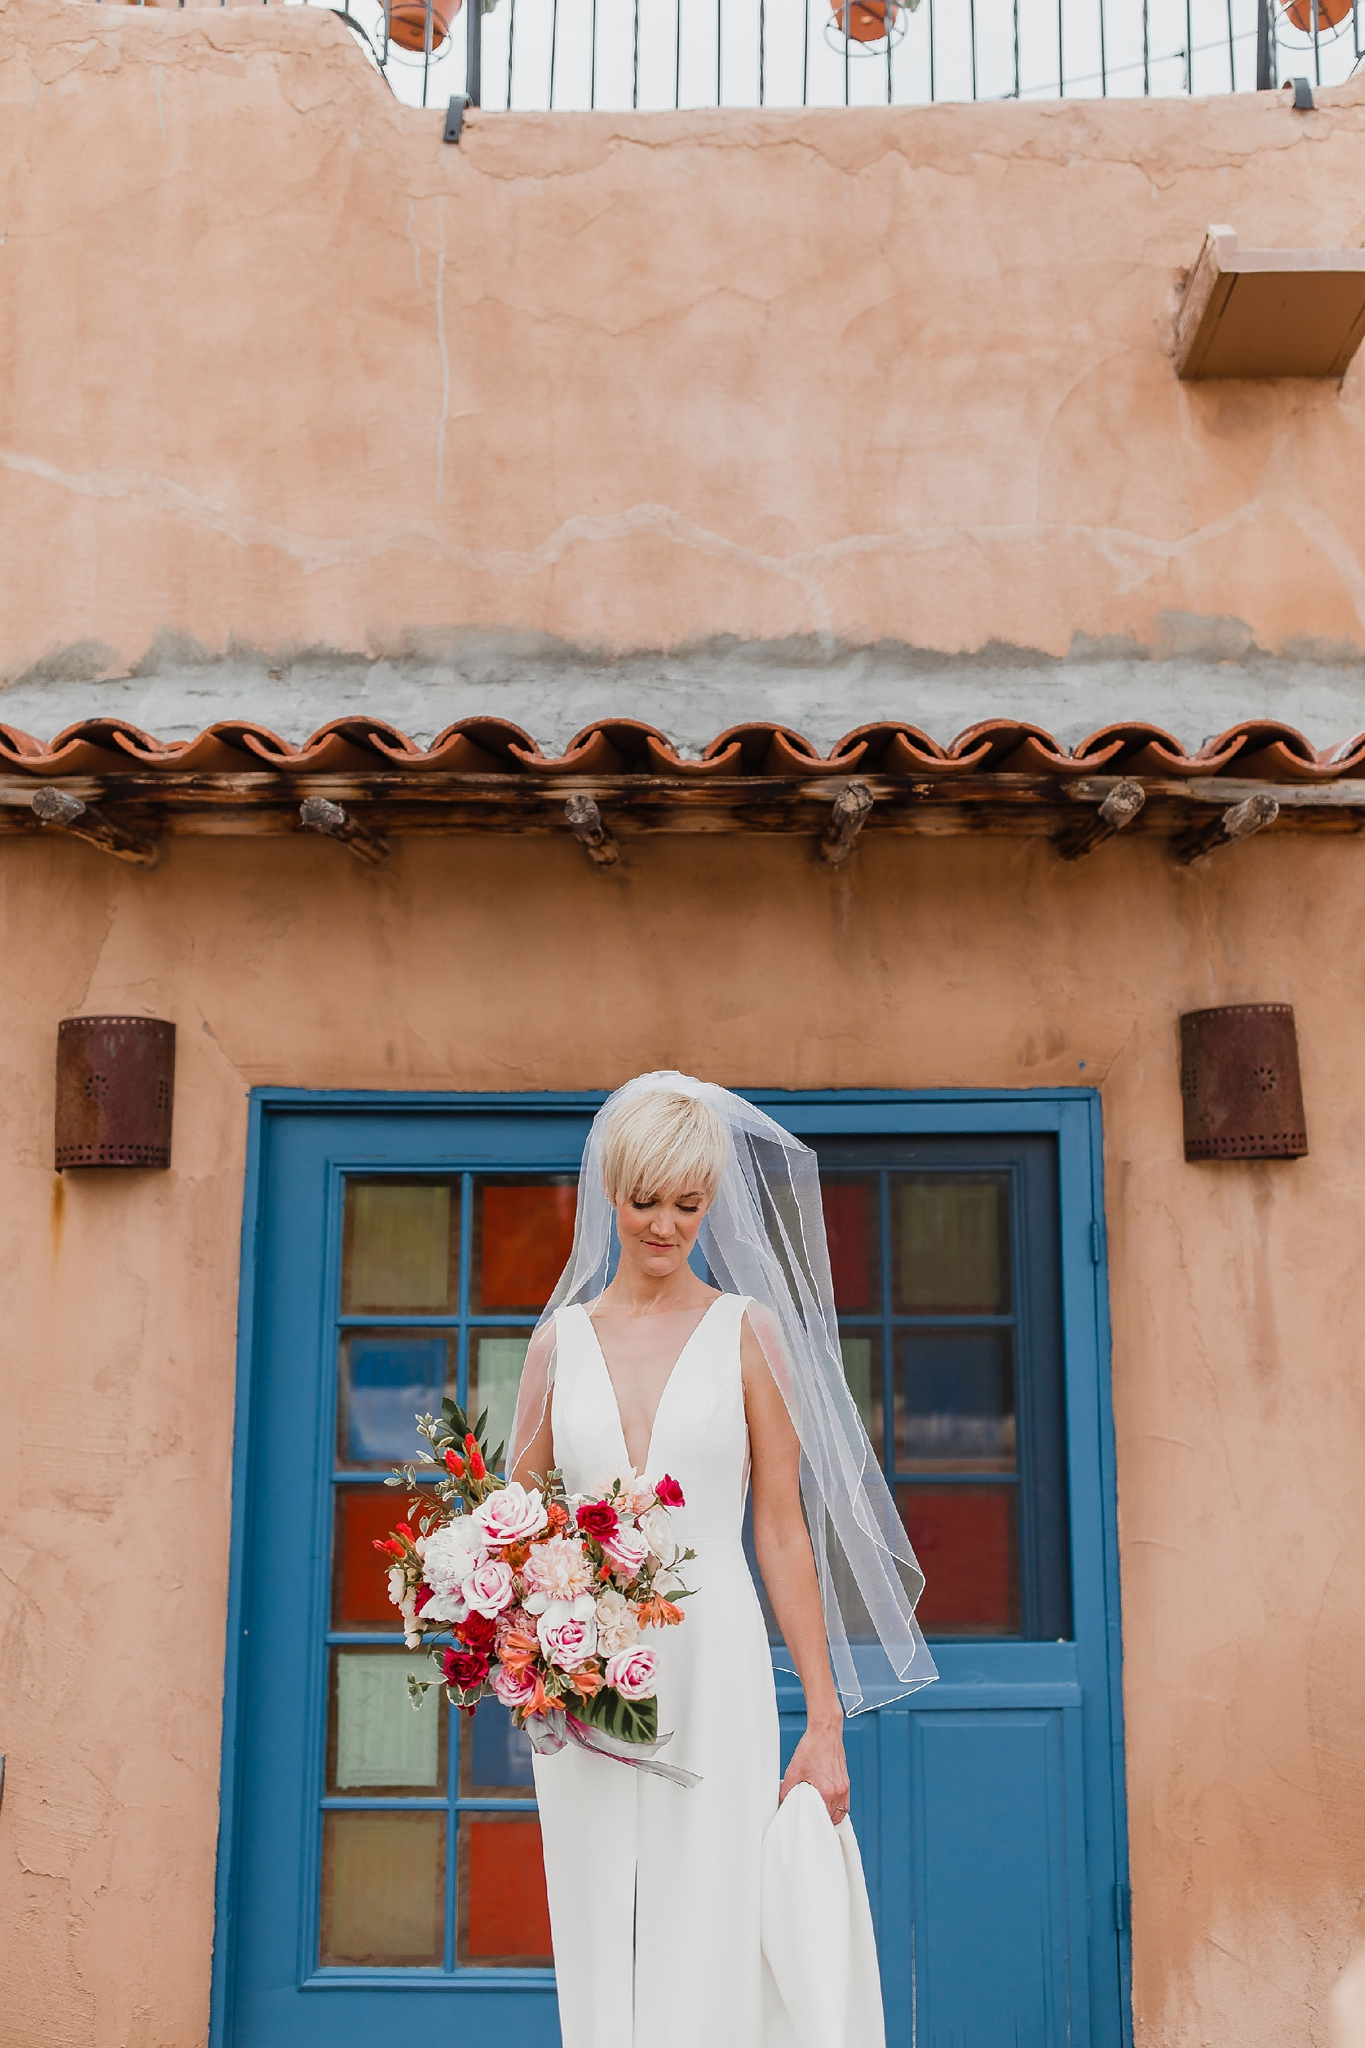 Alicia+lucia+photography+-+albuquerque+wedding+photographer+-+santa+fe+wedding+photography+-+new+mexico+wedding+photographer+-+new+mexico+wedding+-+wedding+makeup+-+makeup+artist+-+wedding+makeup+artist+-+bridal+makeup_0020.jpg